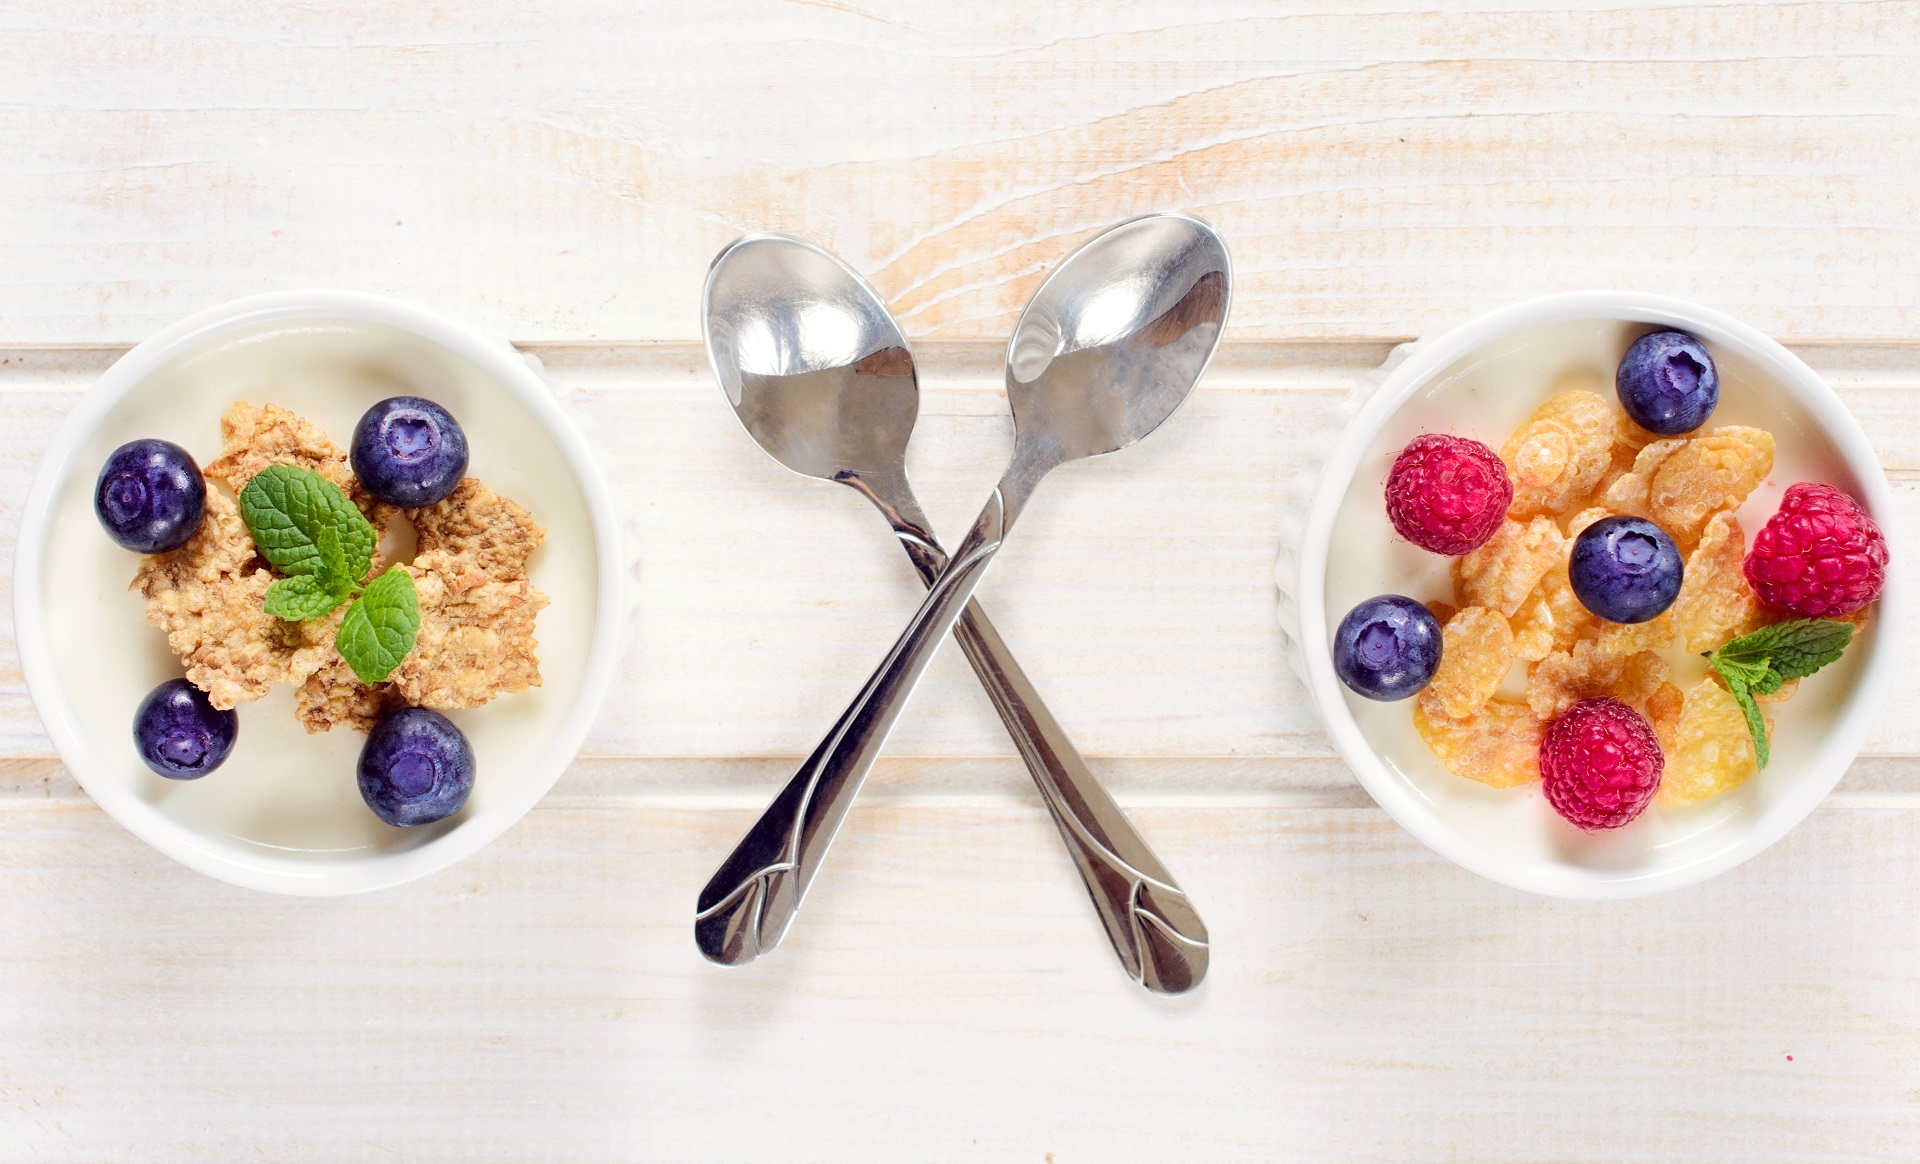 Two bowls of cereal with fruit, seperated by crossed spoons - cereal tastes great, but is it illegal to eat while driving australia